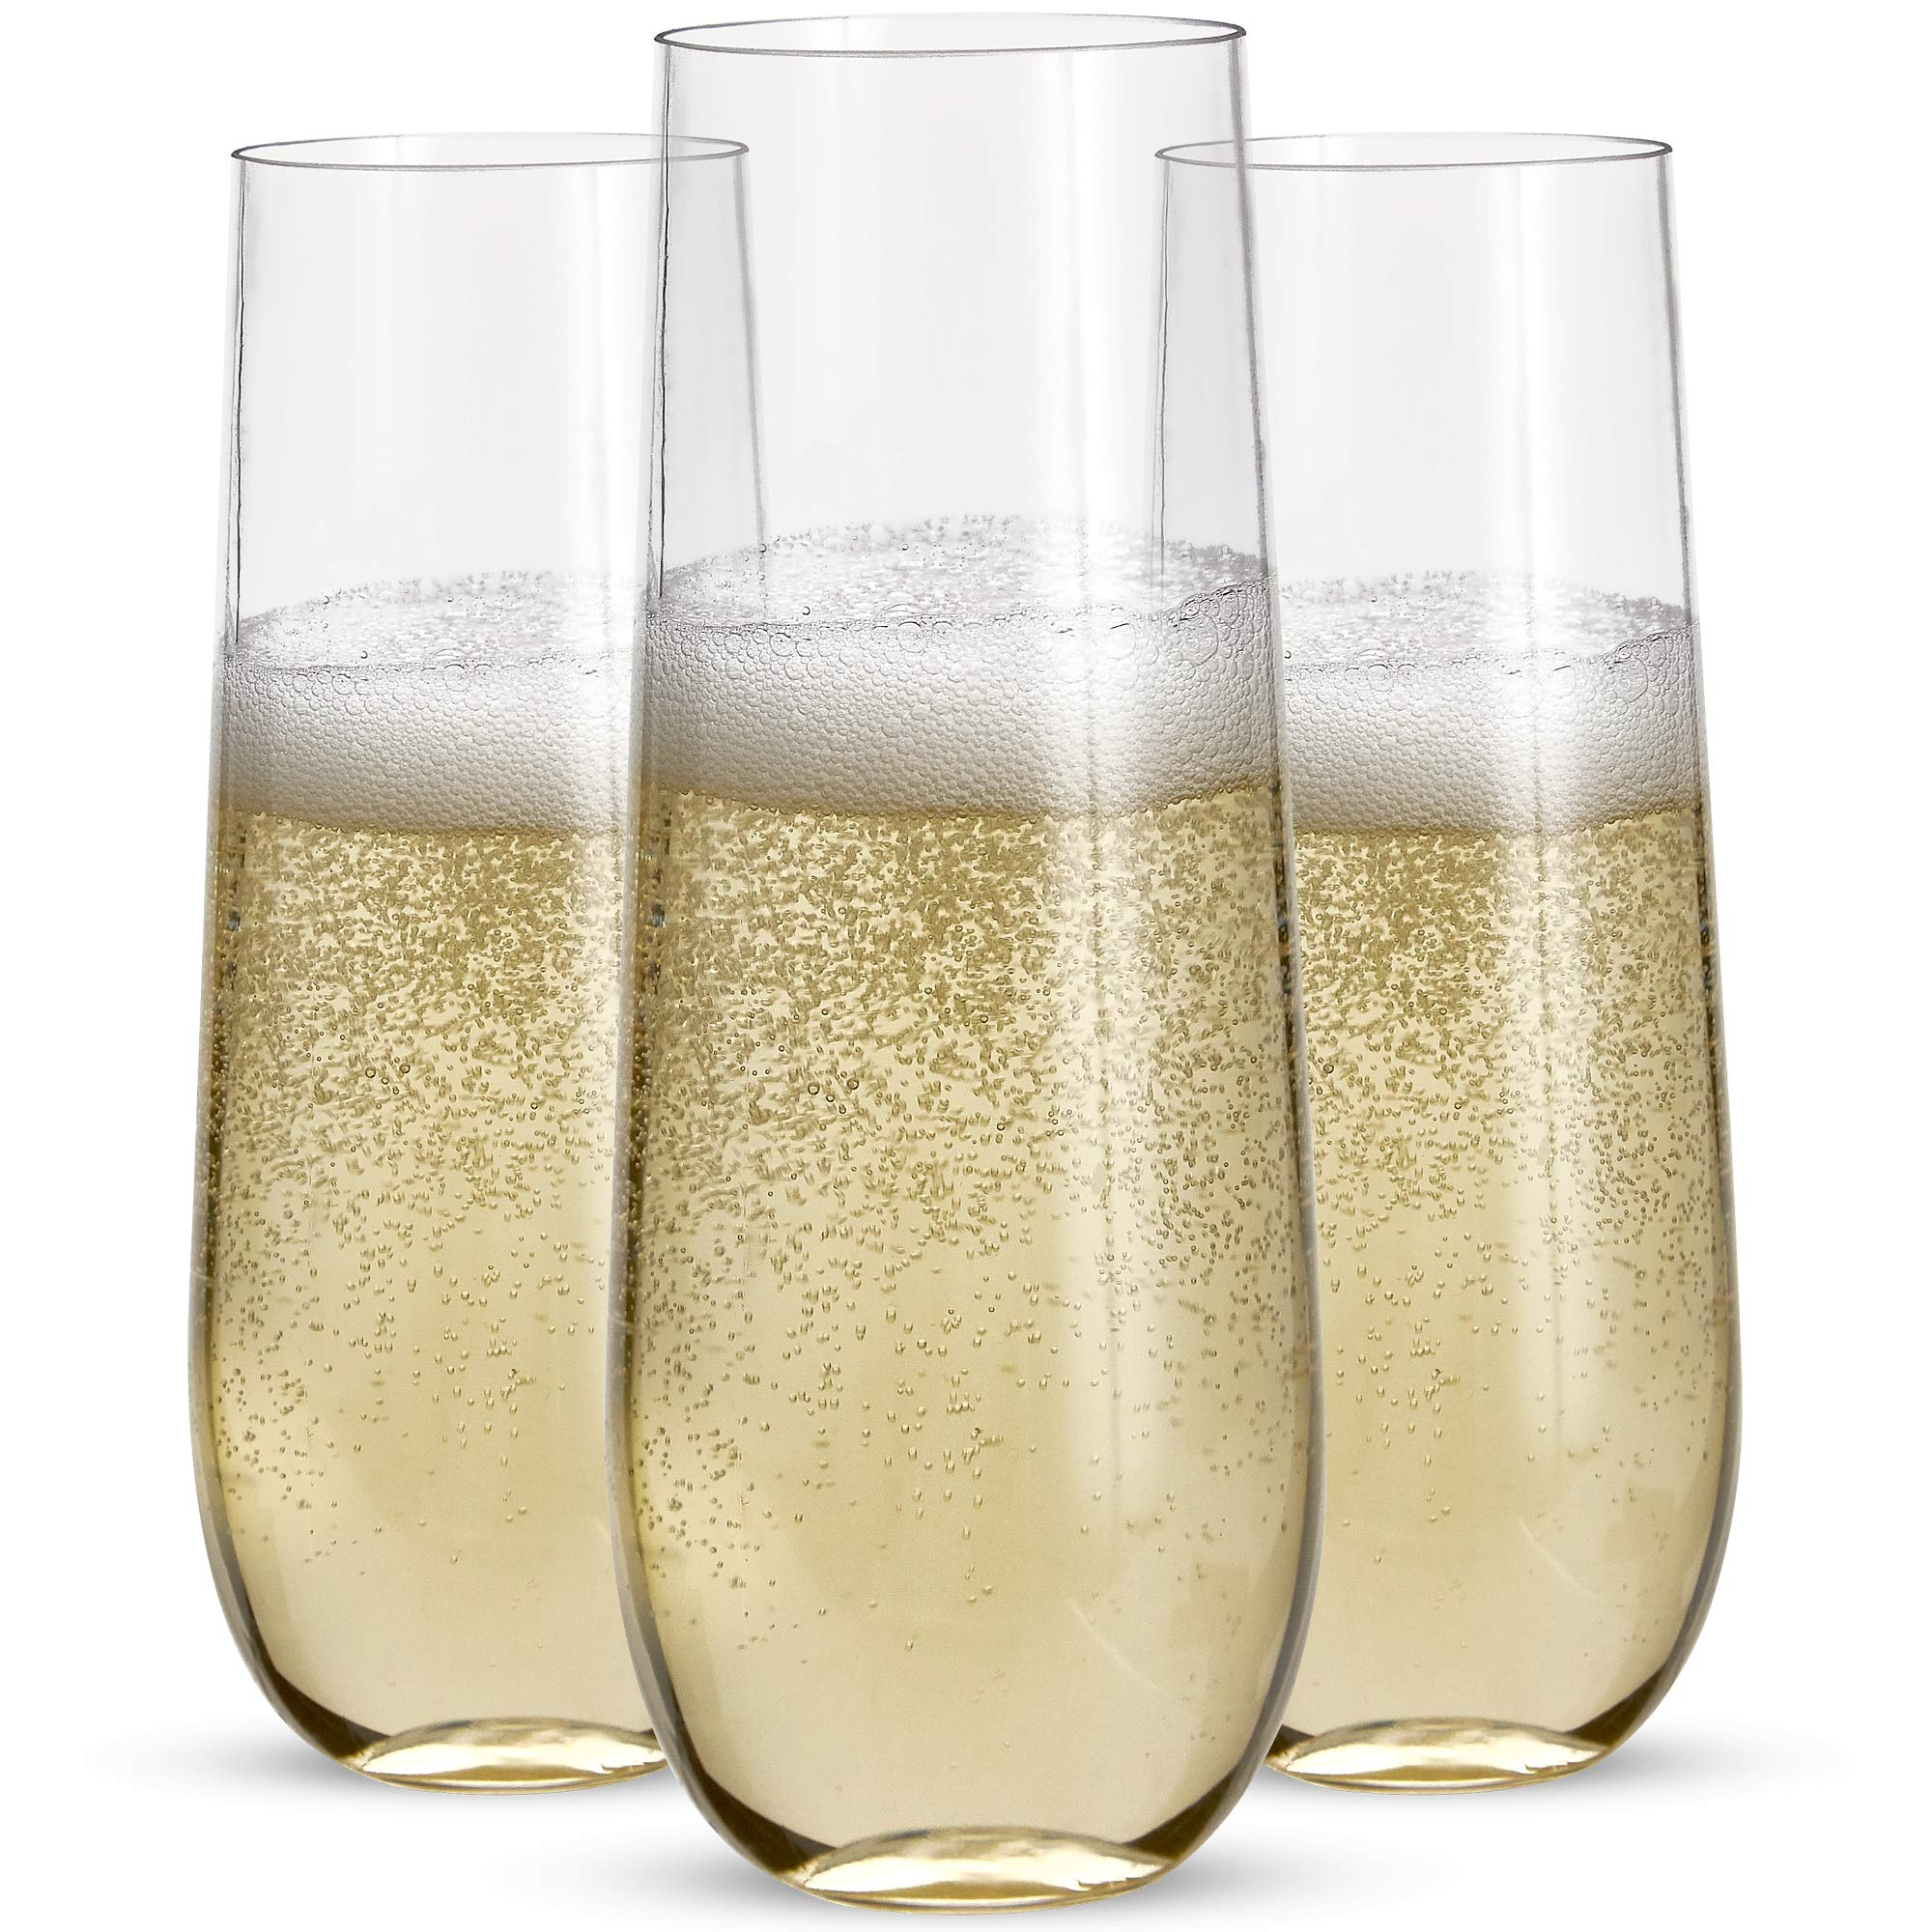 36 Stemless Plastic Champagne Flutes - 9 Oz Plastic Champagne Glasses | Clear Plastic Unbreakable Toasting Glasses |Shatterproof | Disposable | Reusable Perfect For Wedding Or Party by Prestee